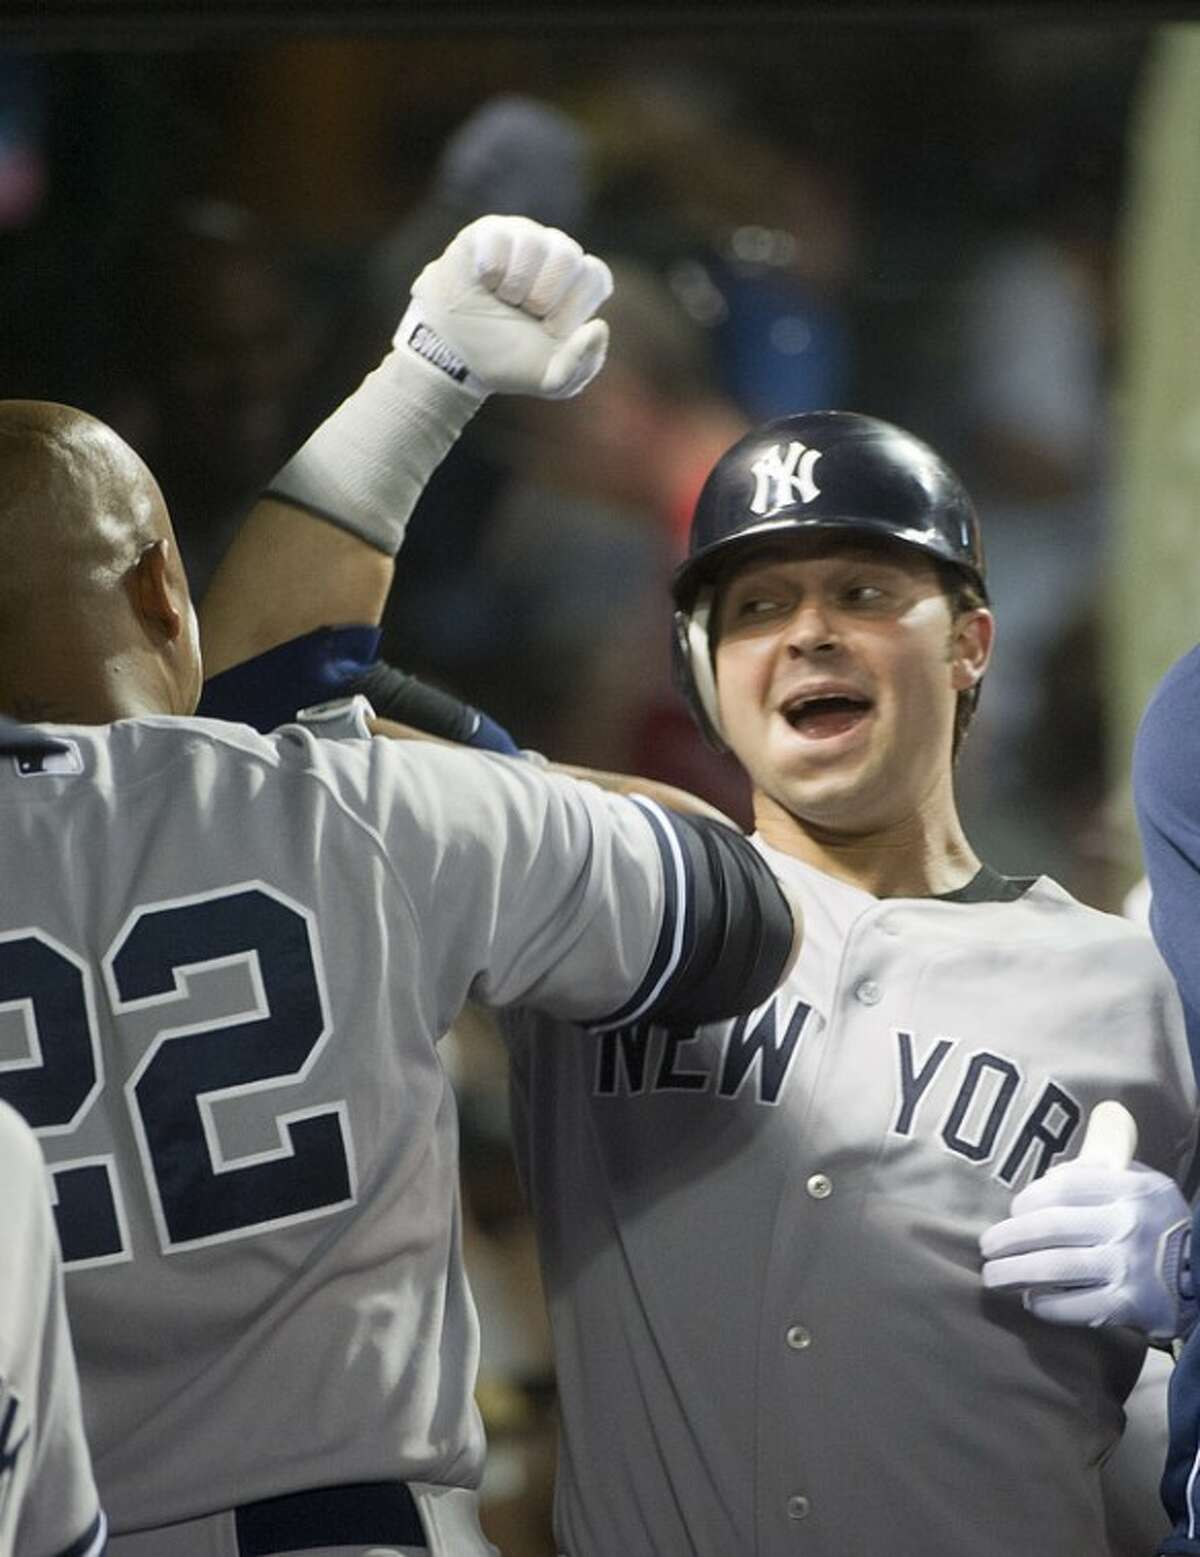 Nick Swisher of the New York Yankees, celebrates his seventh inning two-run home run off Cleveland Indians reliever Tony Sipp, with Andruw Jones (22) during a baseball game in Cleveland, Friday, Aug. 24, 2012. (AP Phil Long)